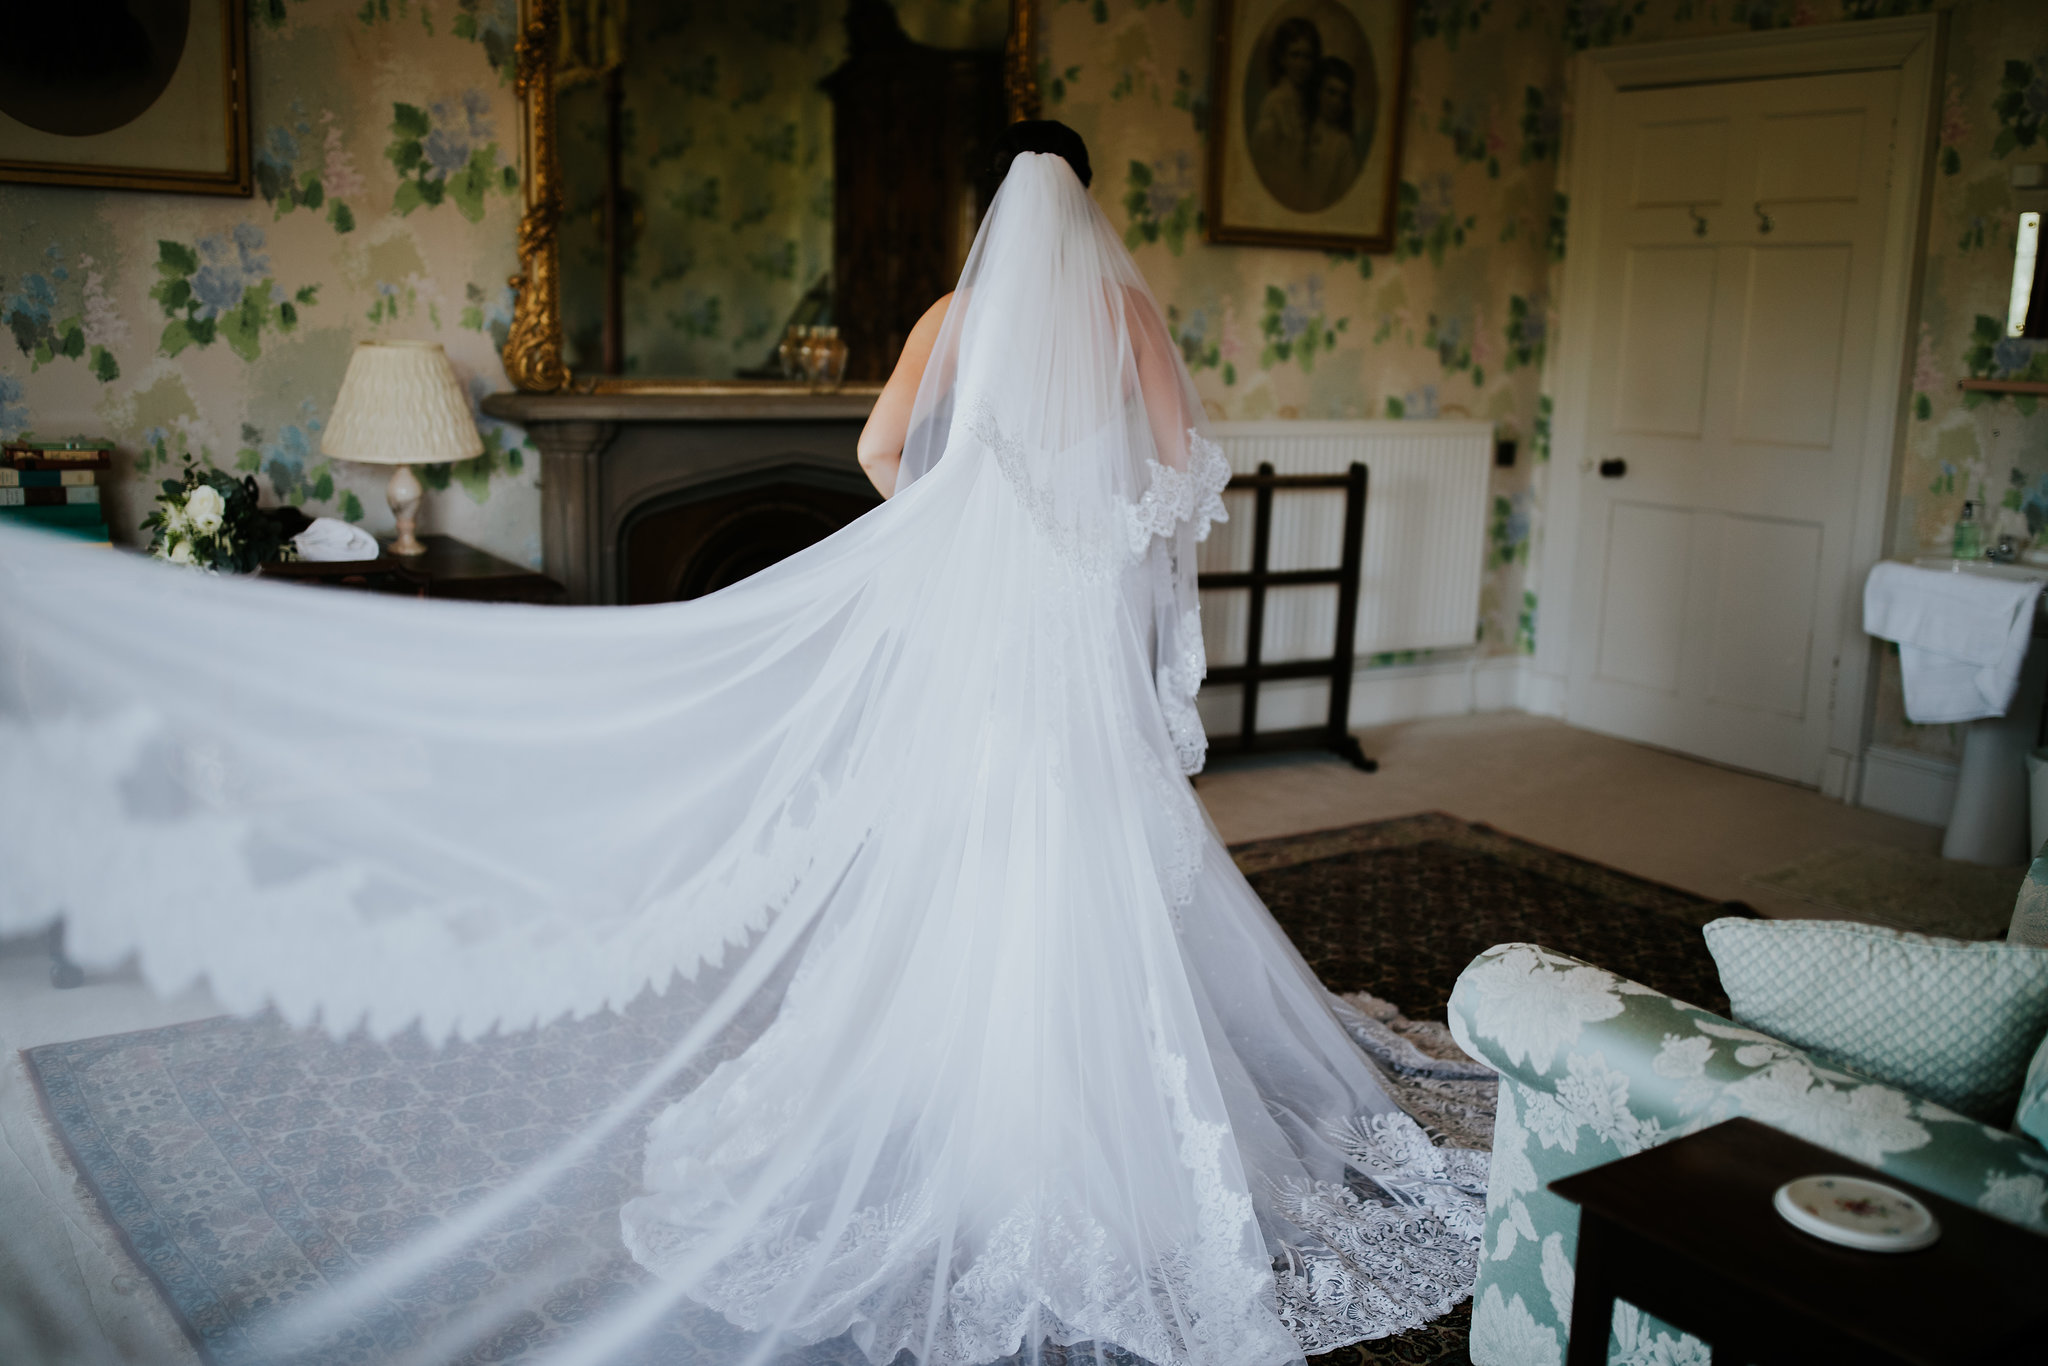 Duns_Castle_wedding_photographer_ross_alexander_photography (39).jpg